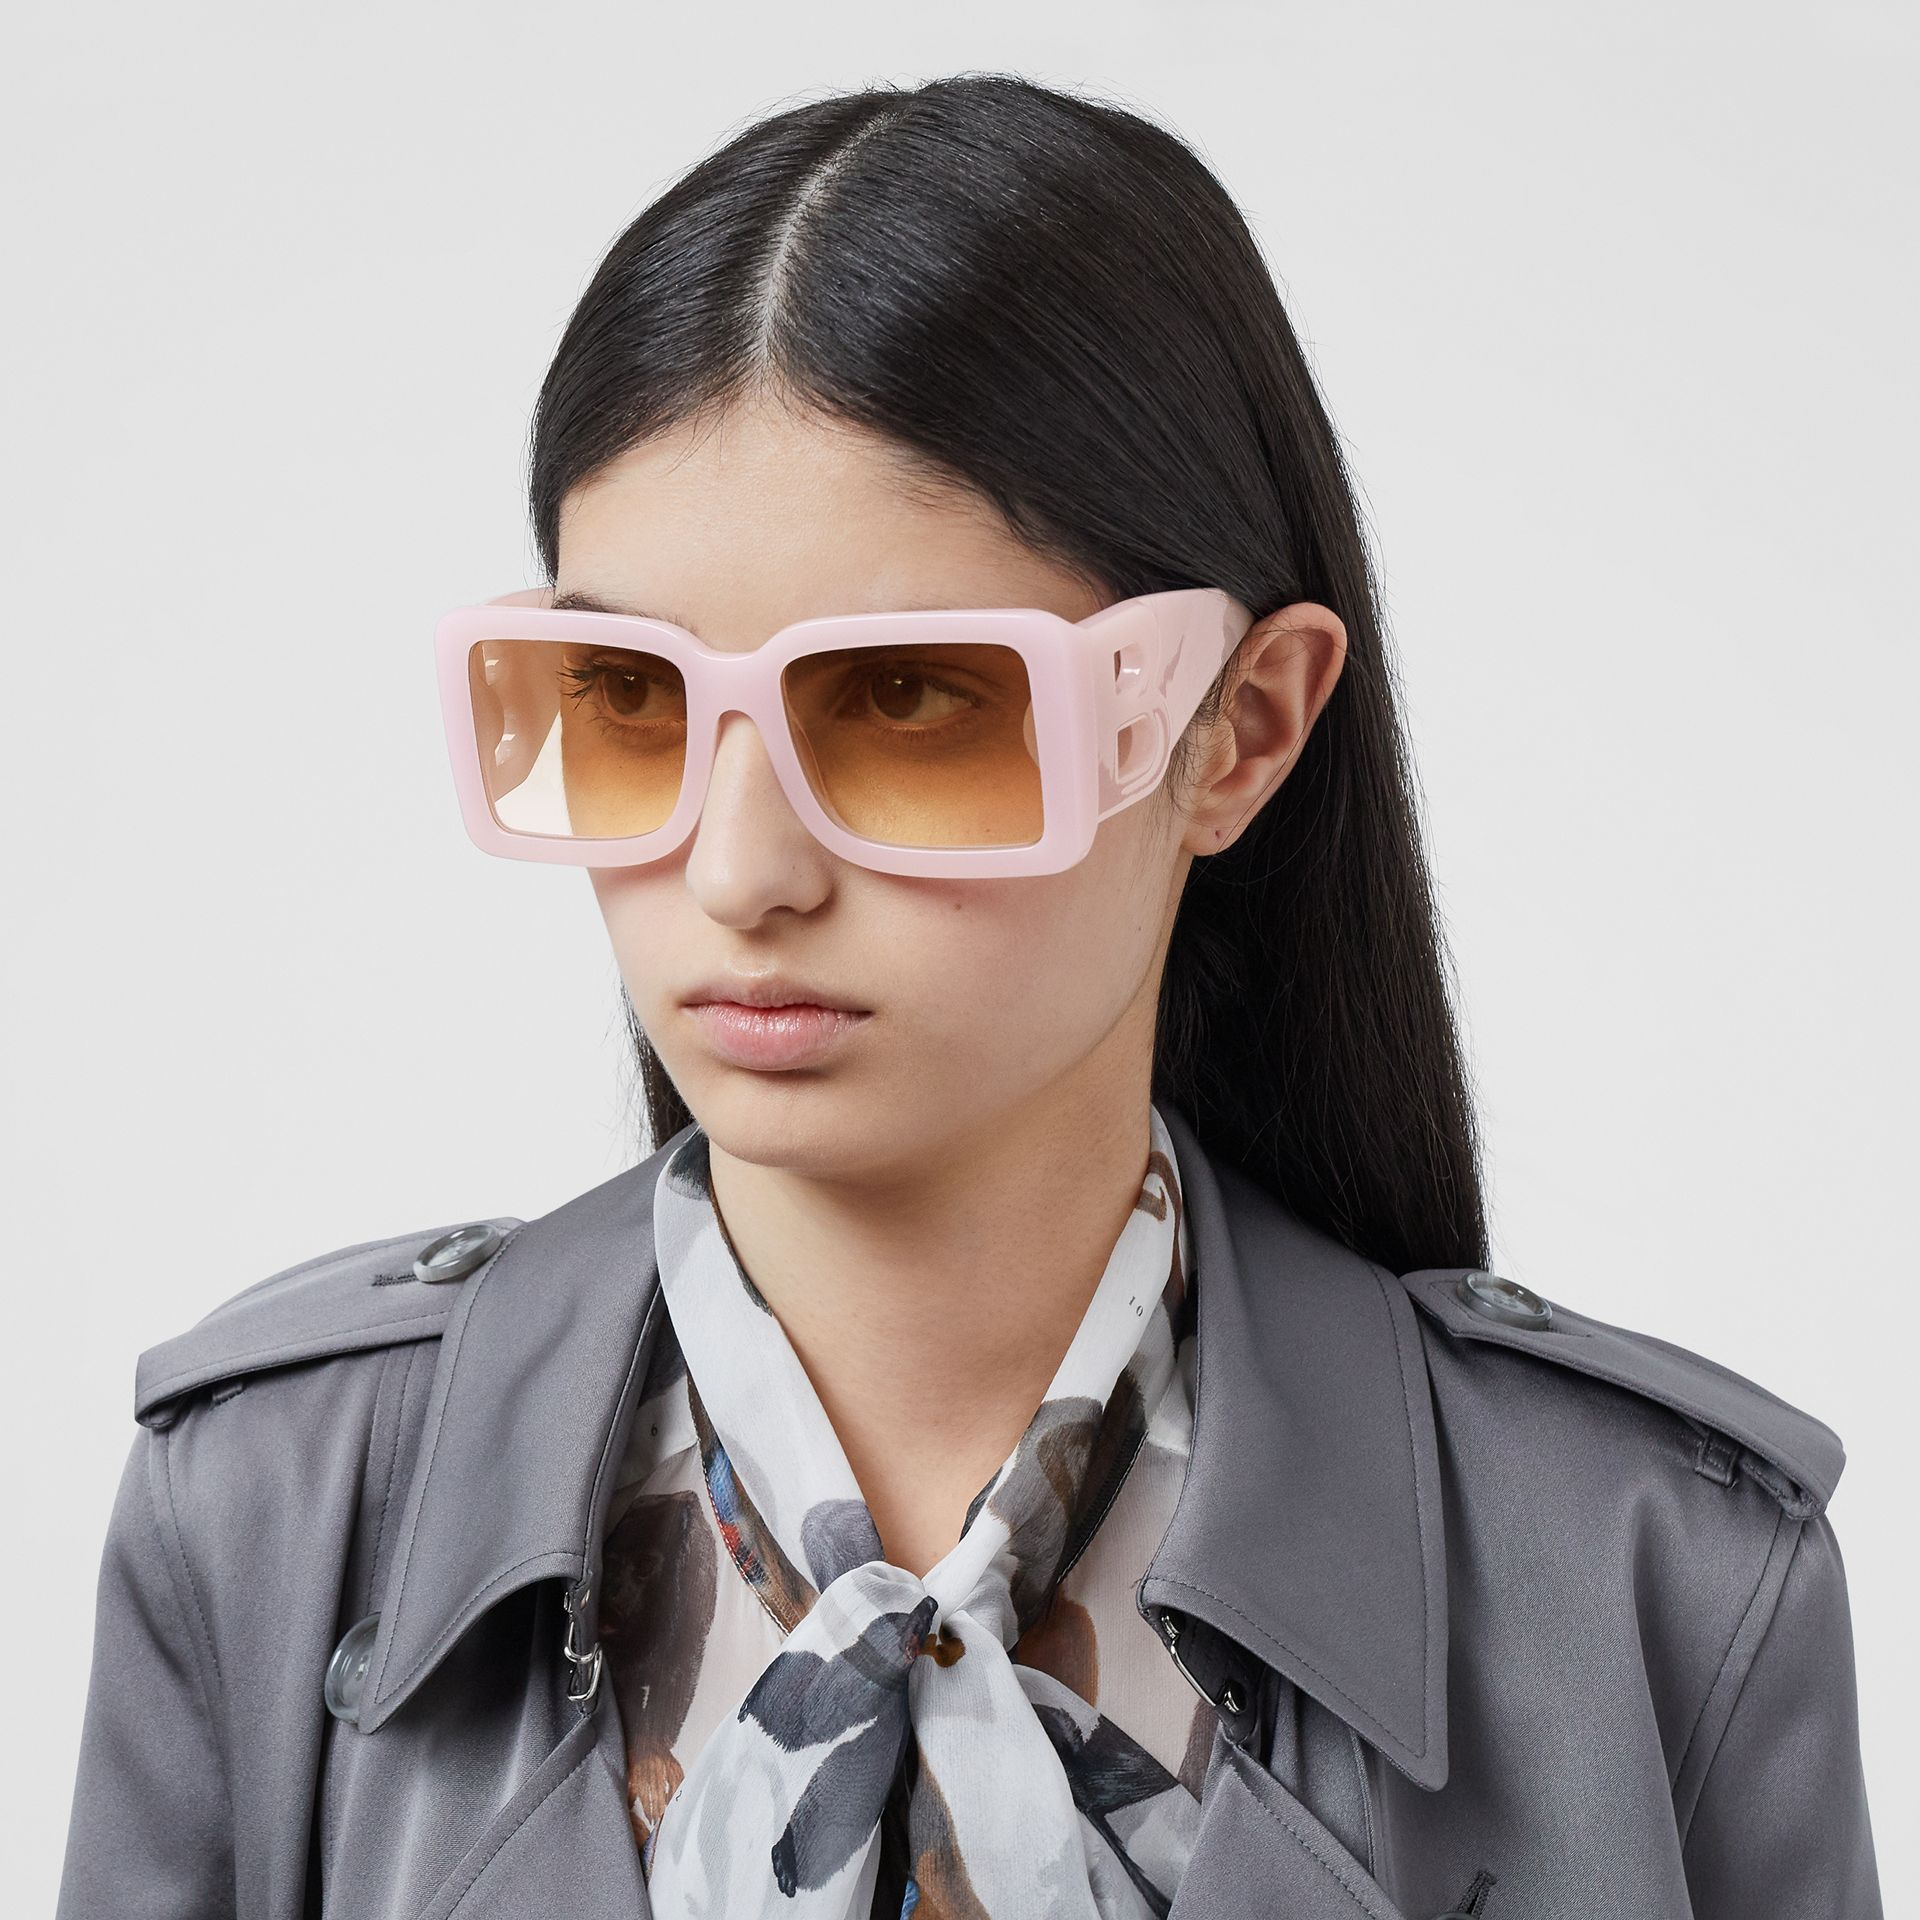 B Motif Square Frame Sunglasses in Lilac - Women   Burberry United Kingdom - gallery image 2